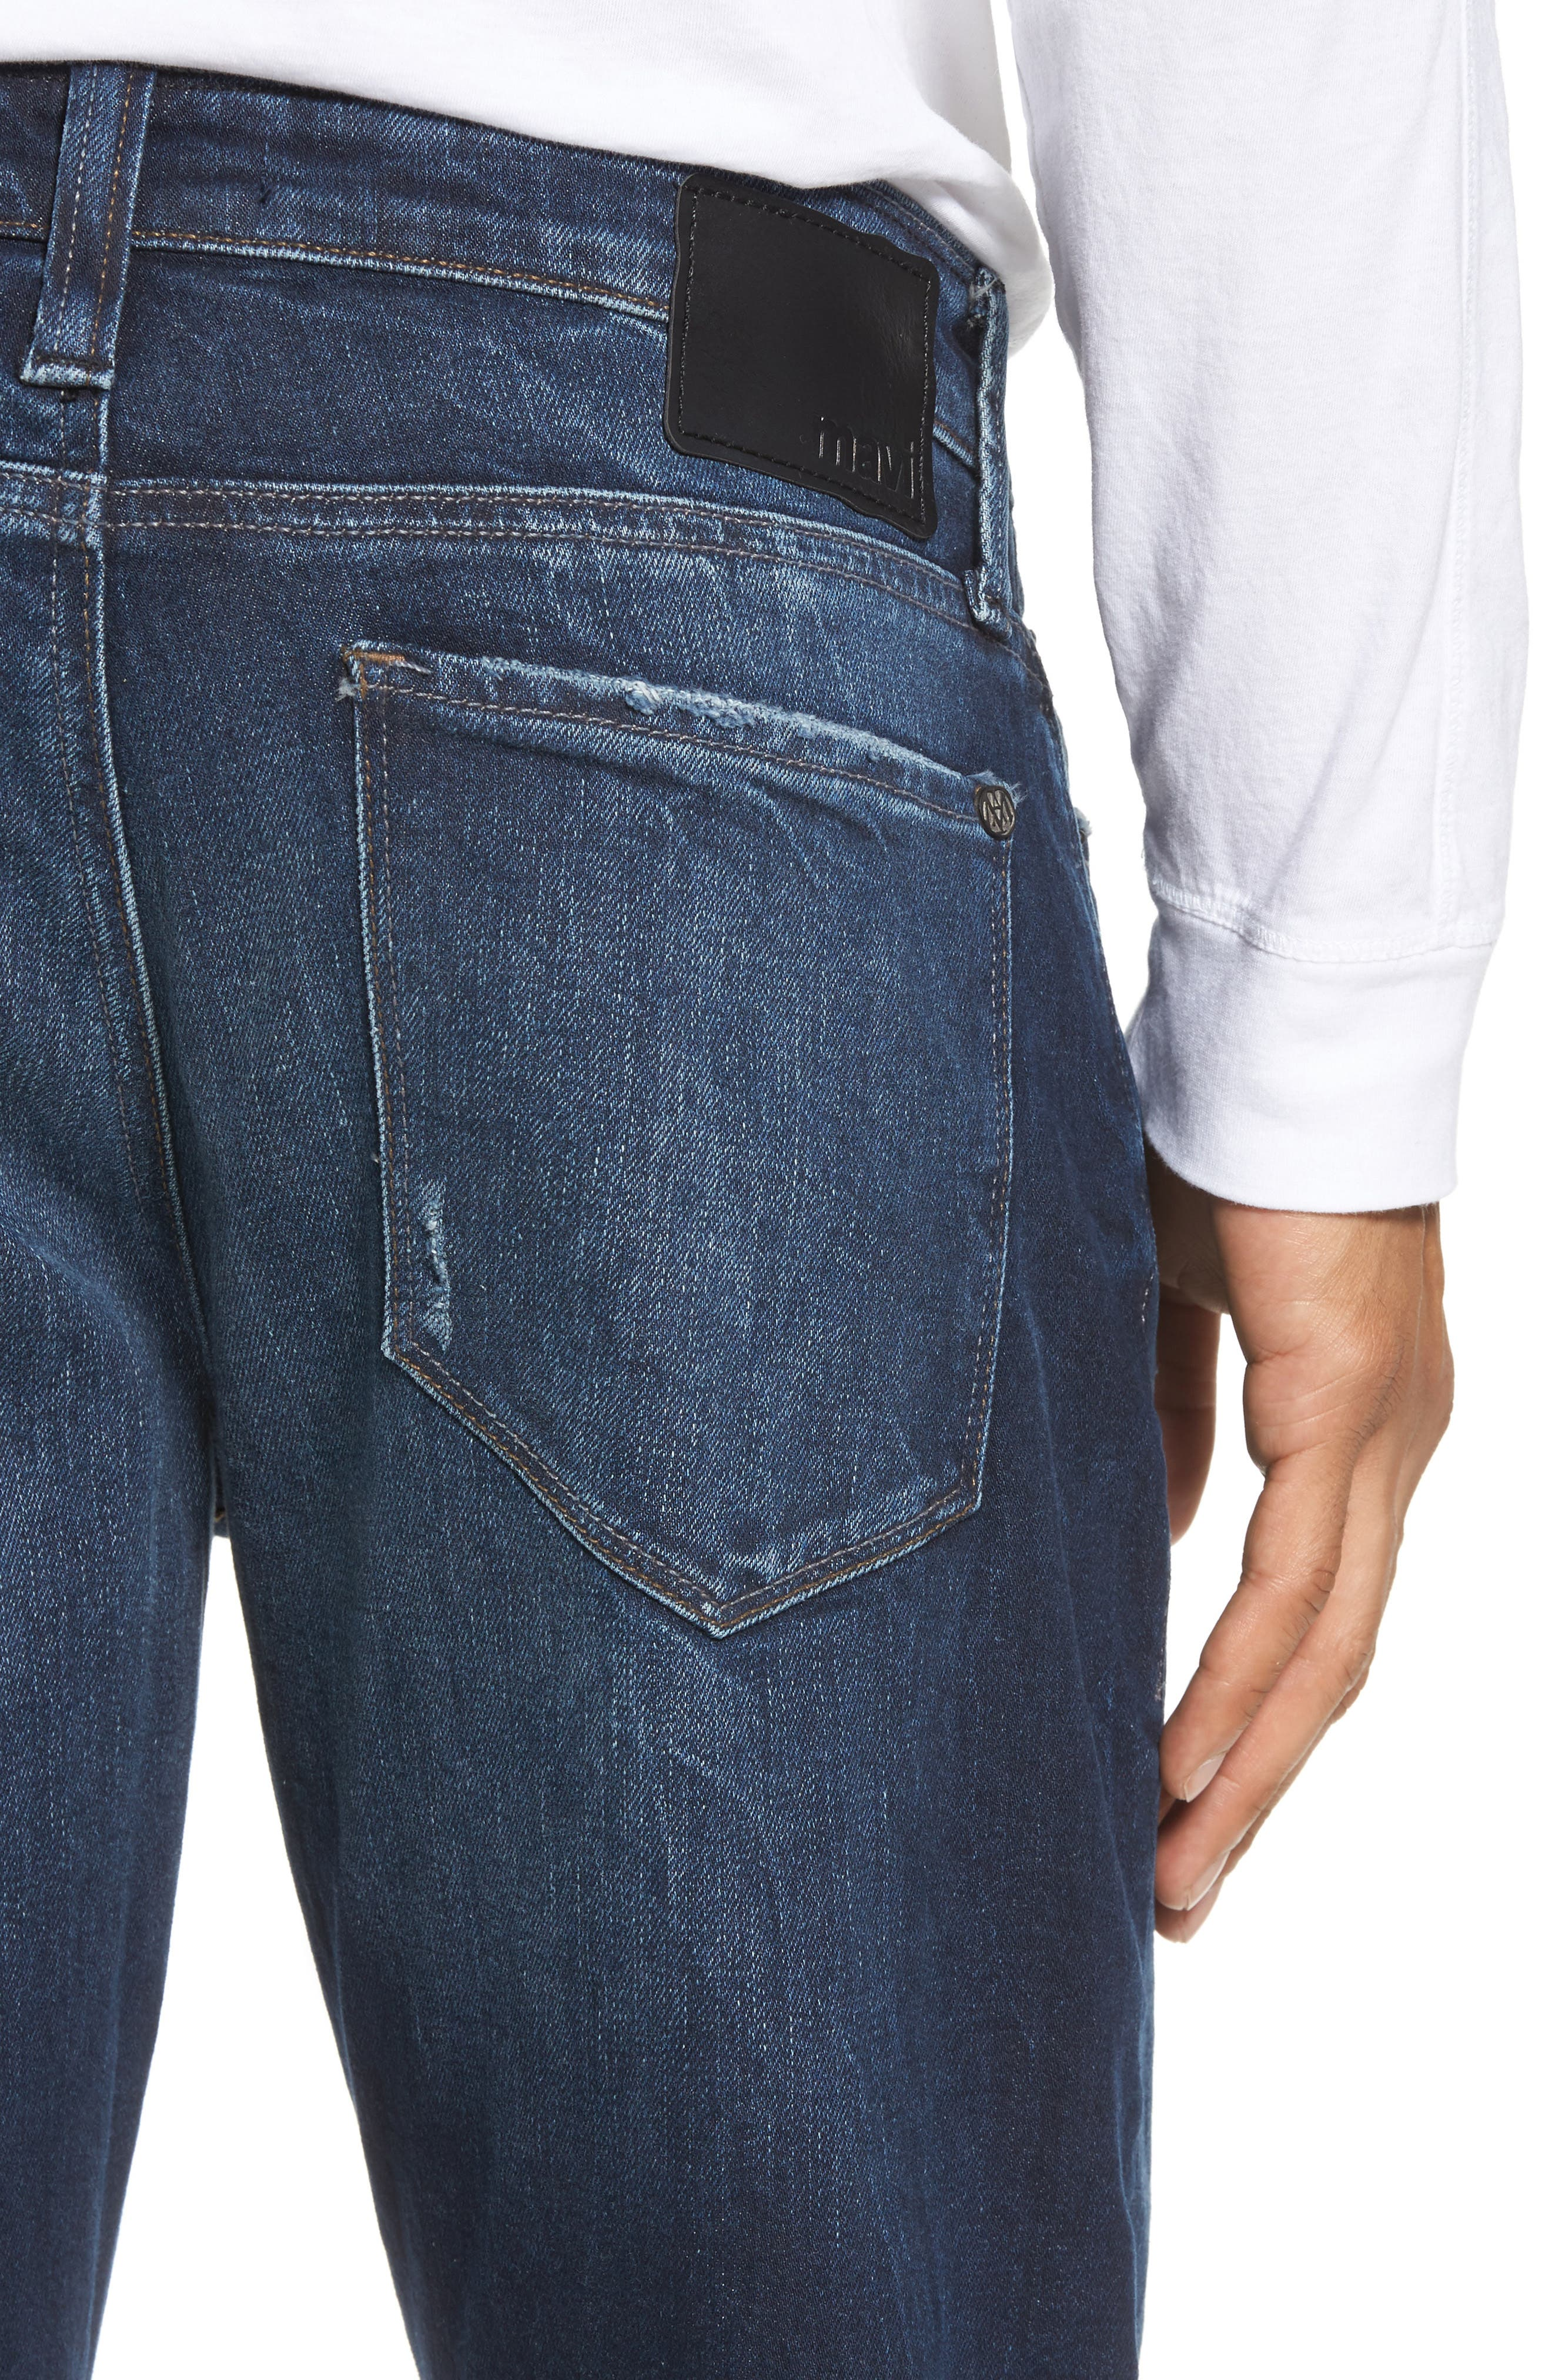 Marcus Slim Straight Leg Jeans,                             Alternate thumbnail 4, color,                             401